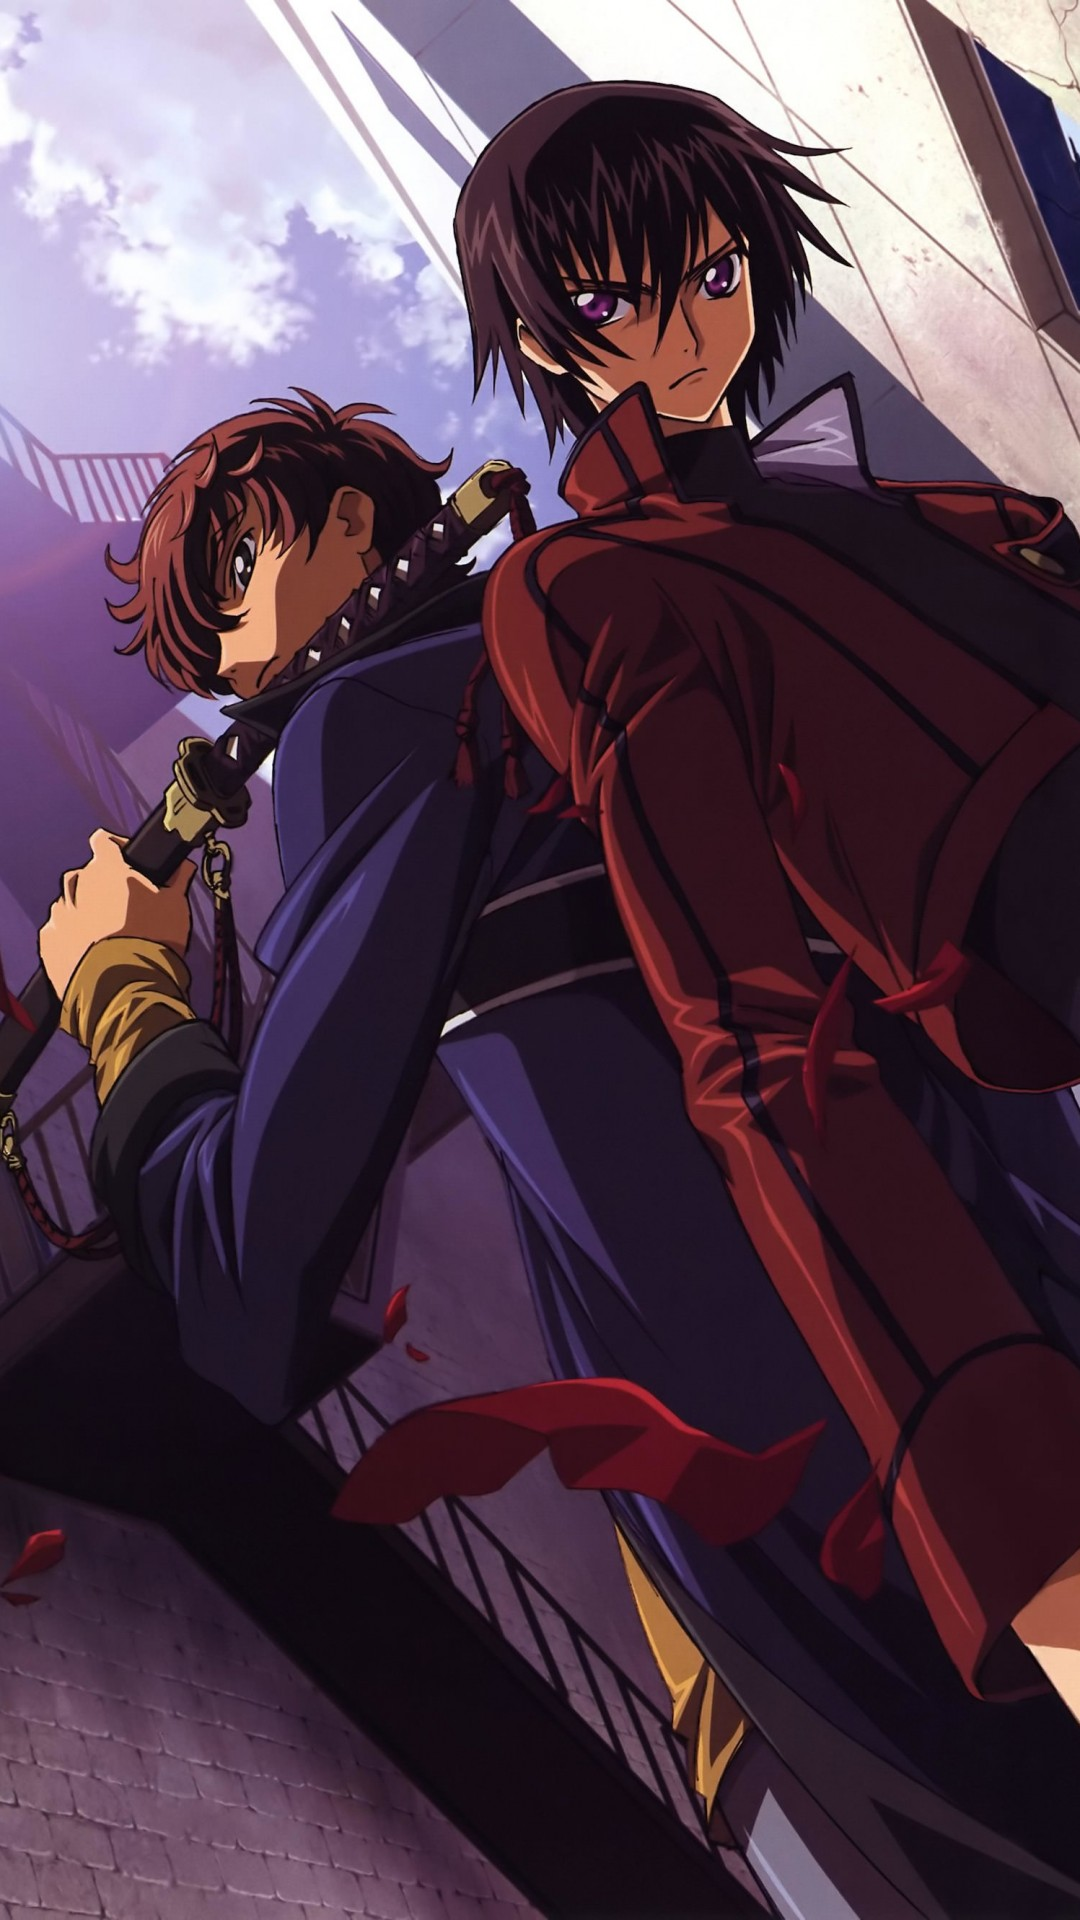 Code Geass Wallpaper for SONY Xperia Z3